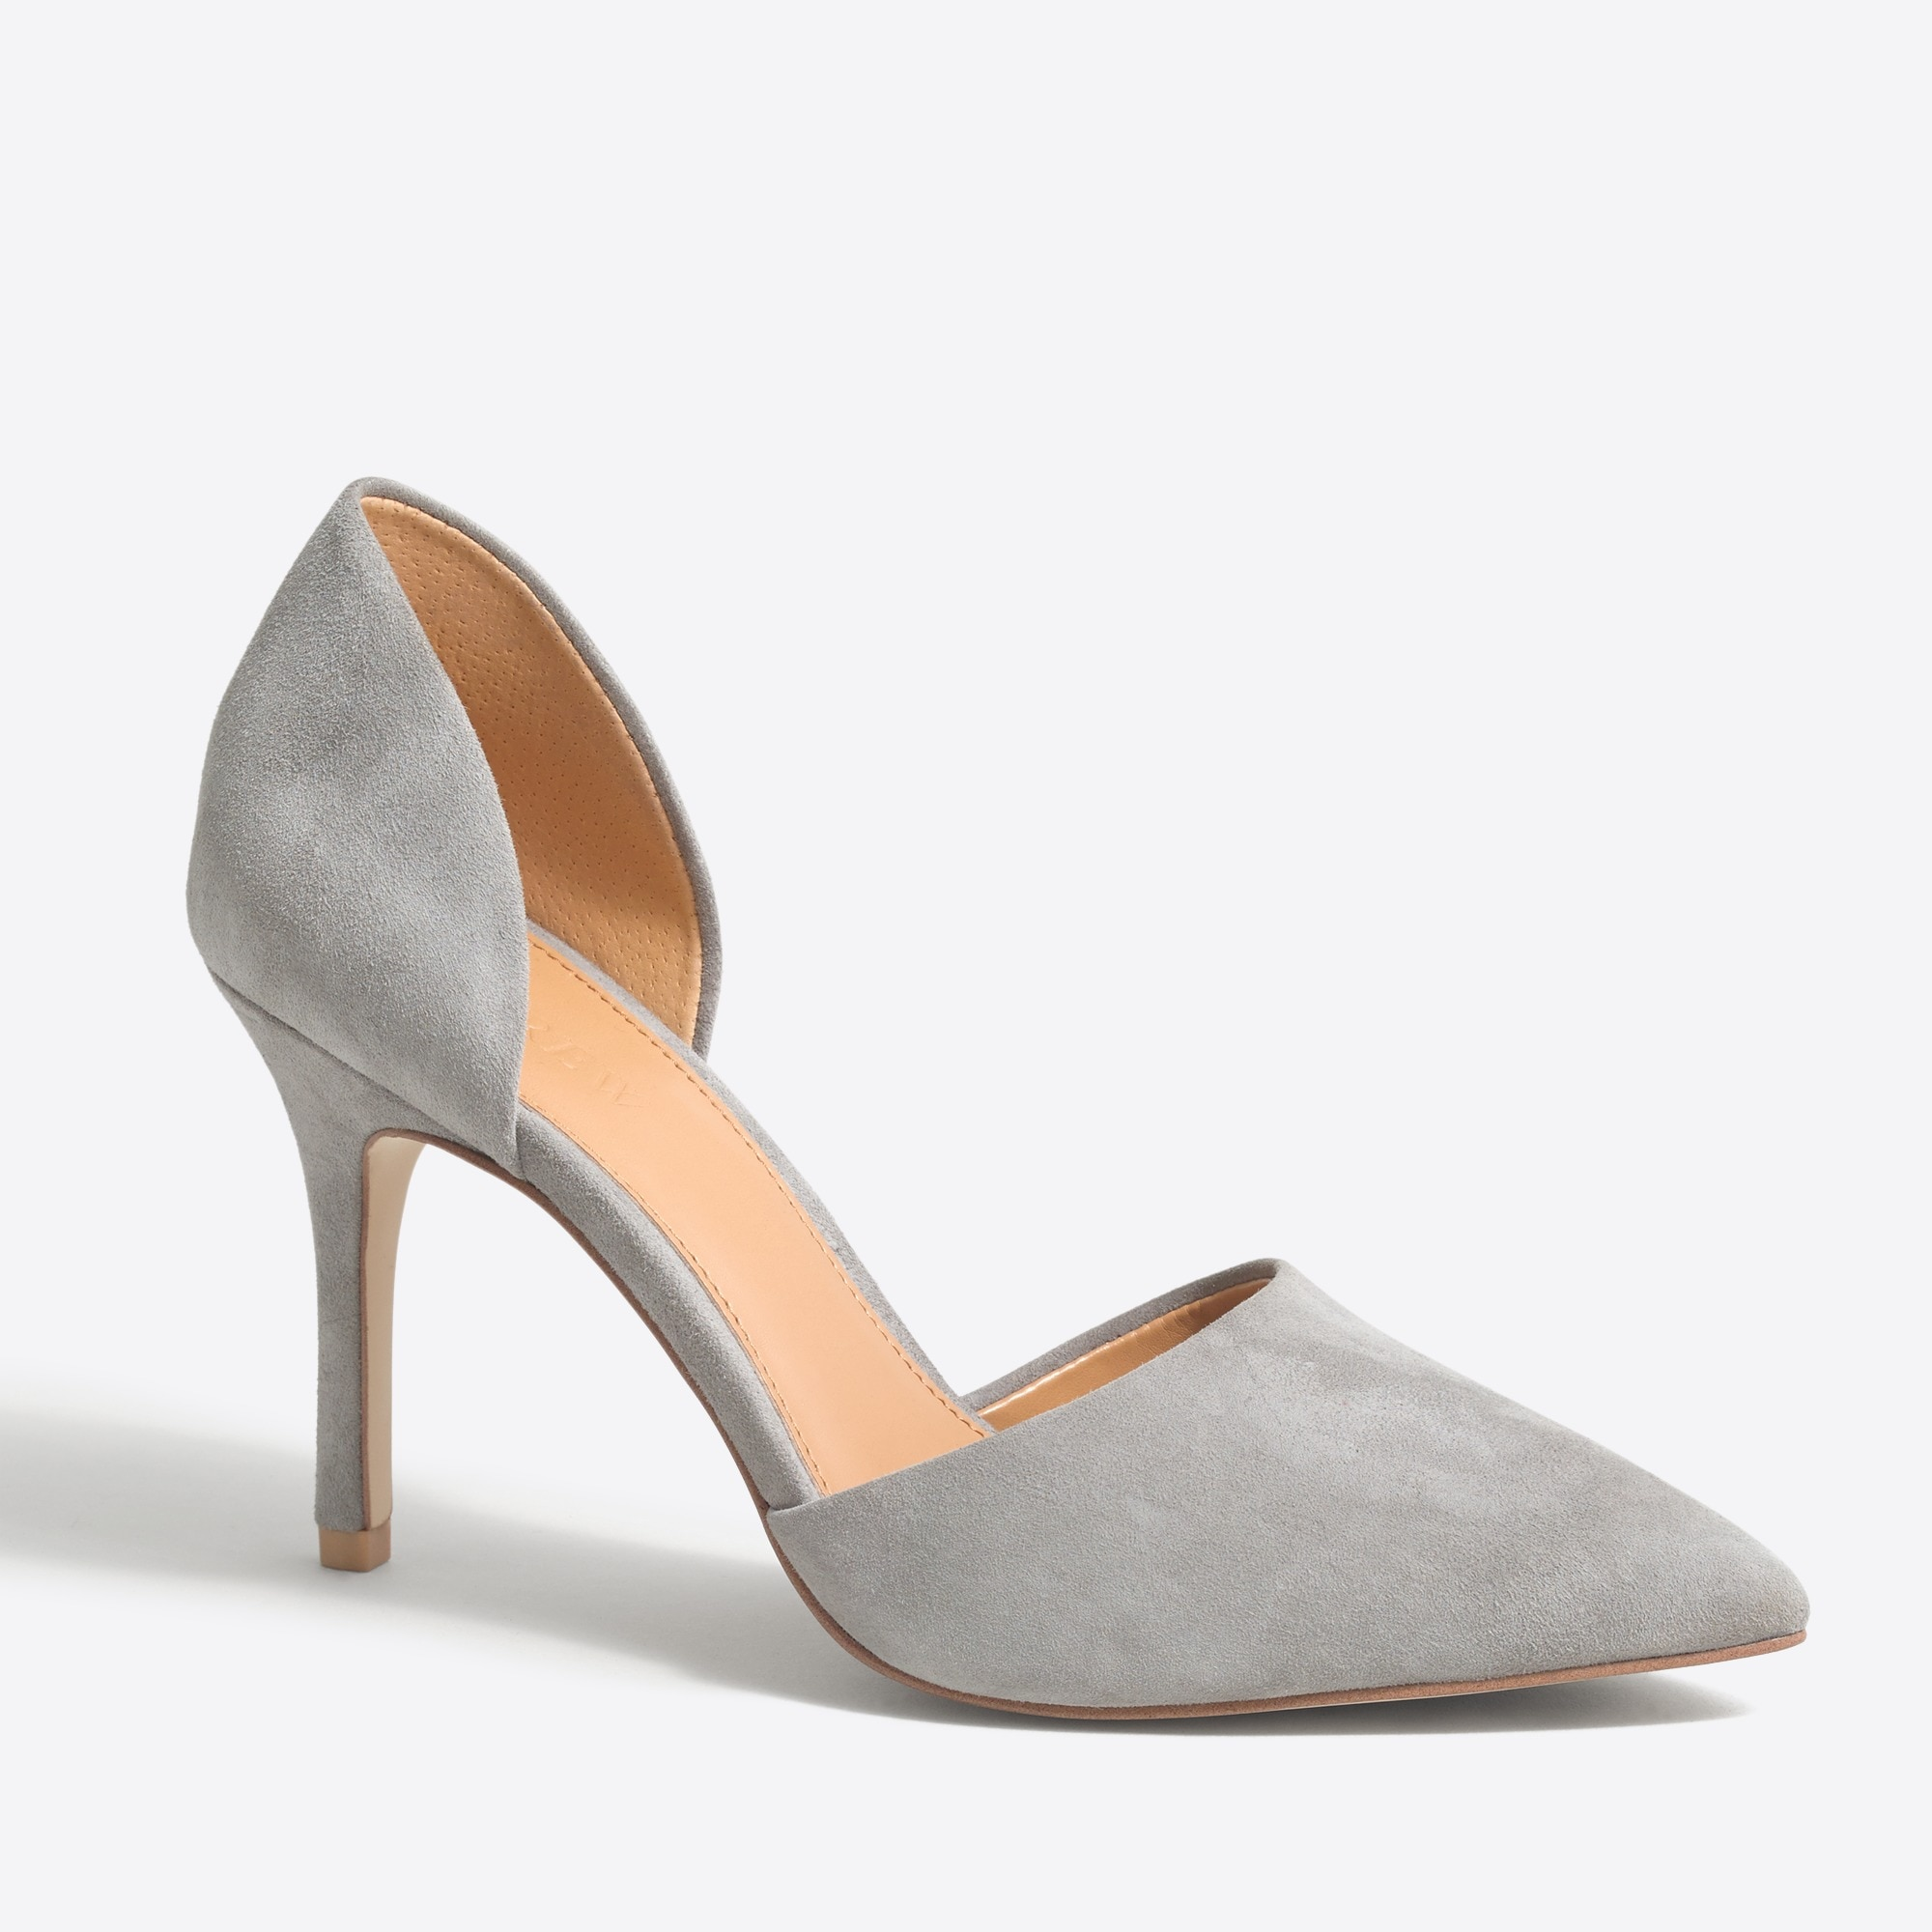 Suede d'Orsay pumps factorywomen shoes c